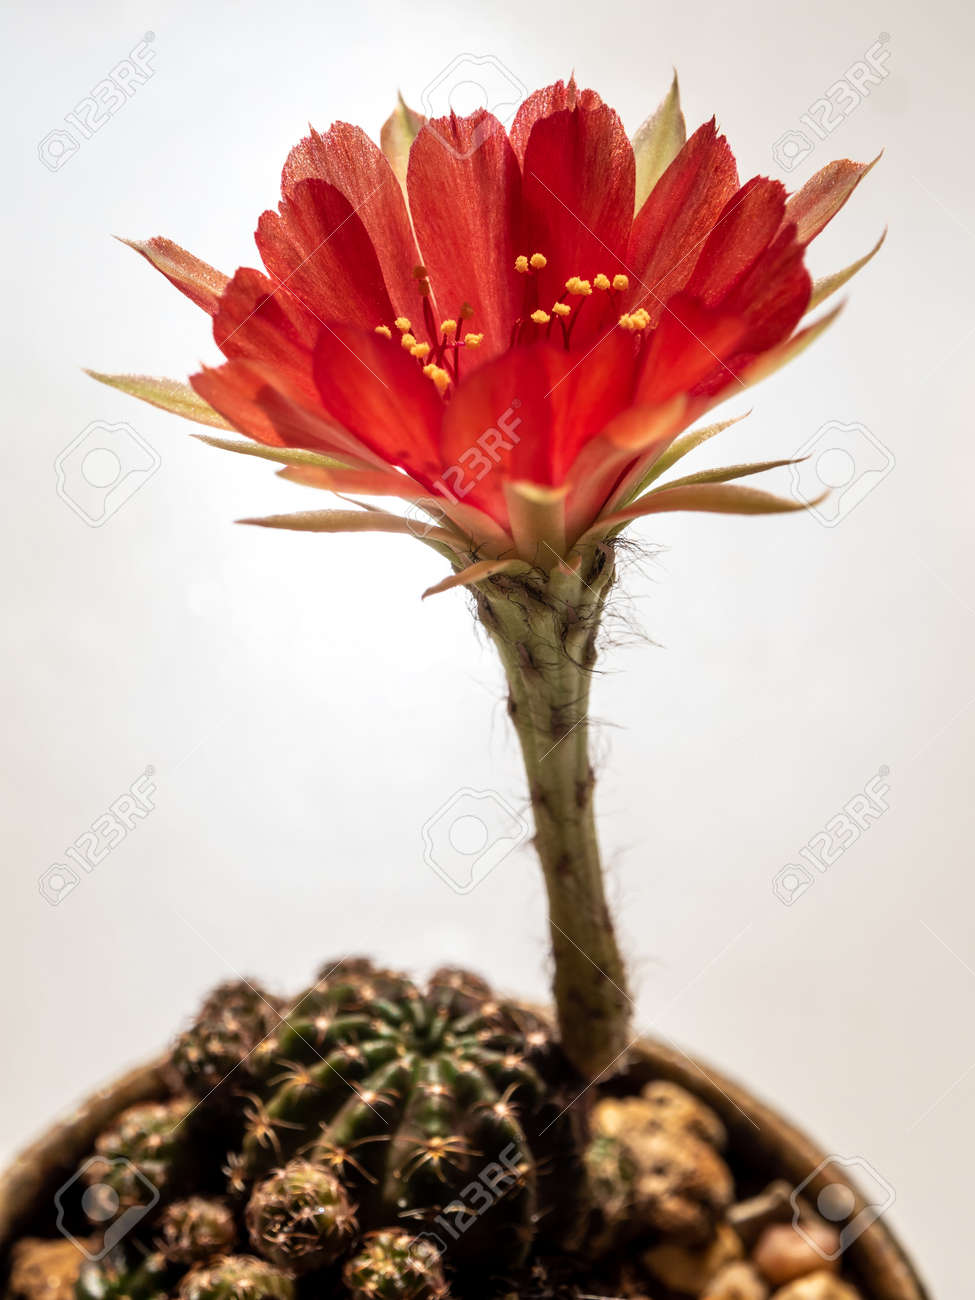 Red color delicate petal with fluffy hairy of Echinopsis Cactus flower on white background - 170504947